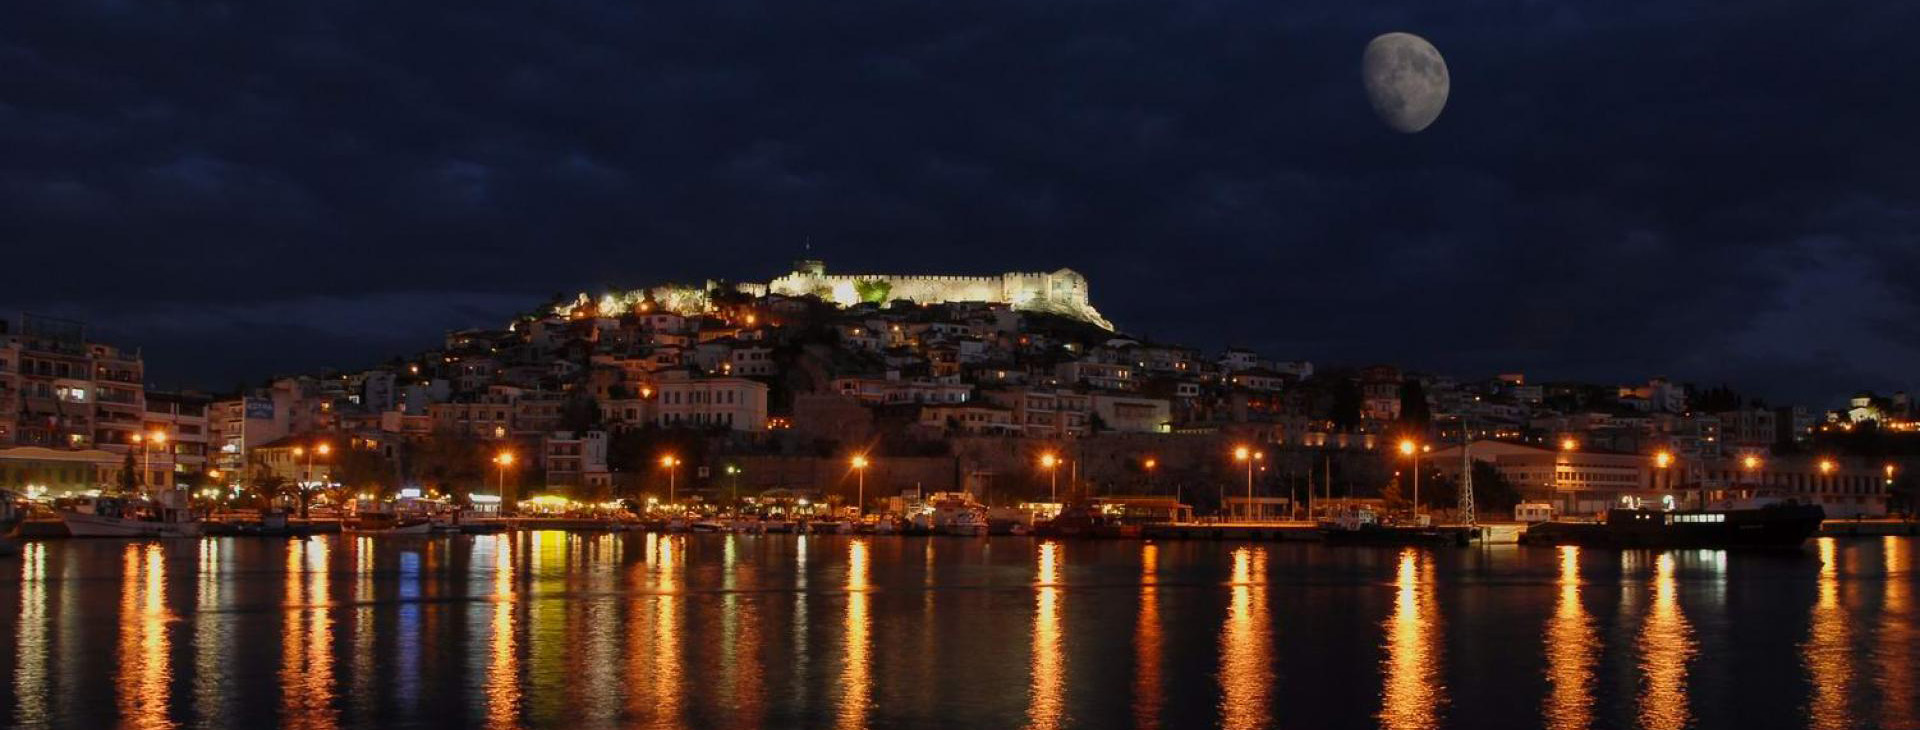 Castle of Kavala and old town by night